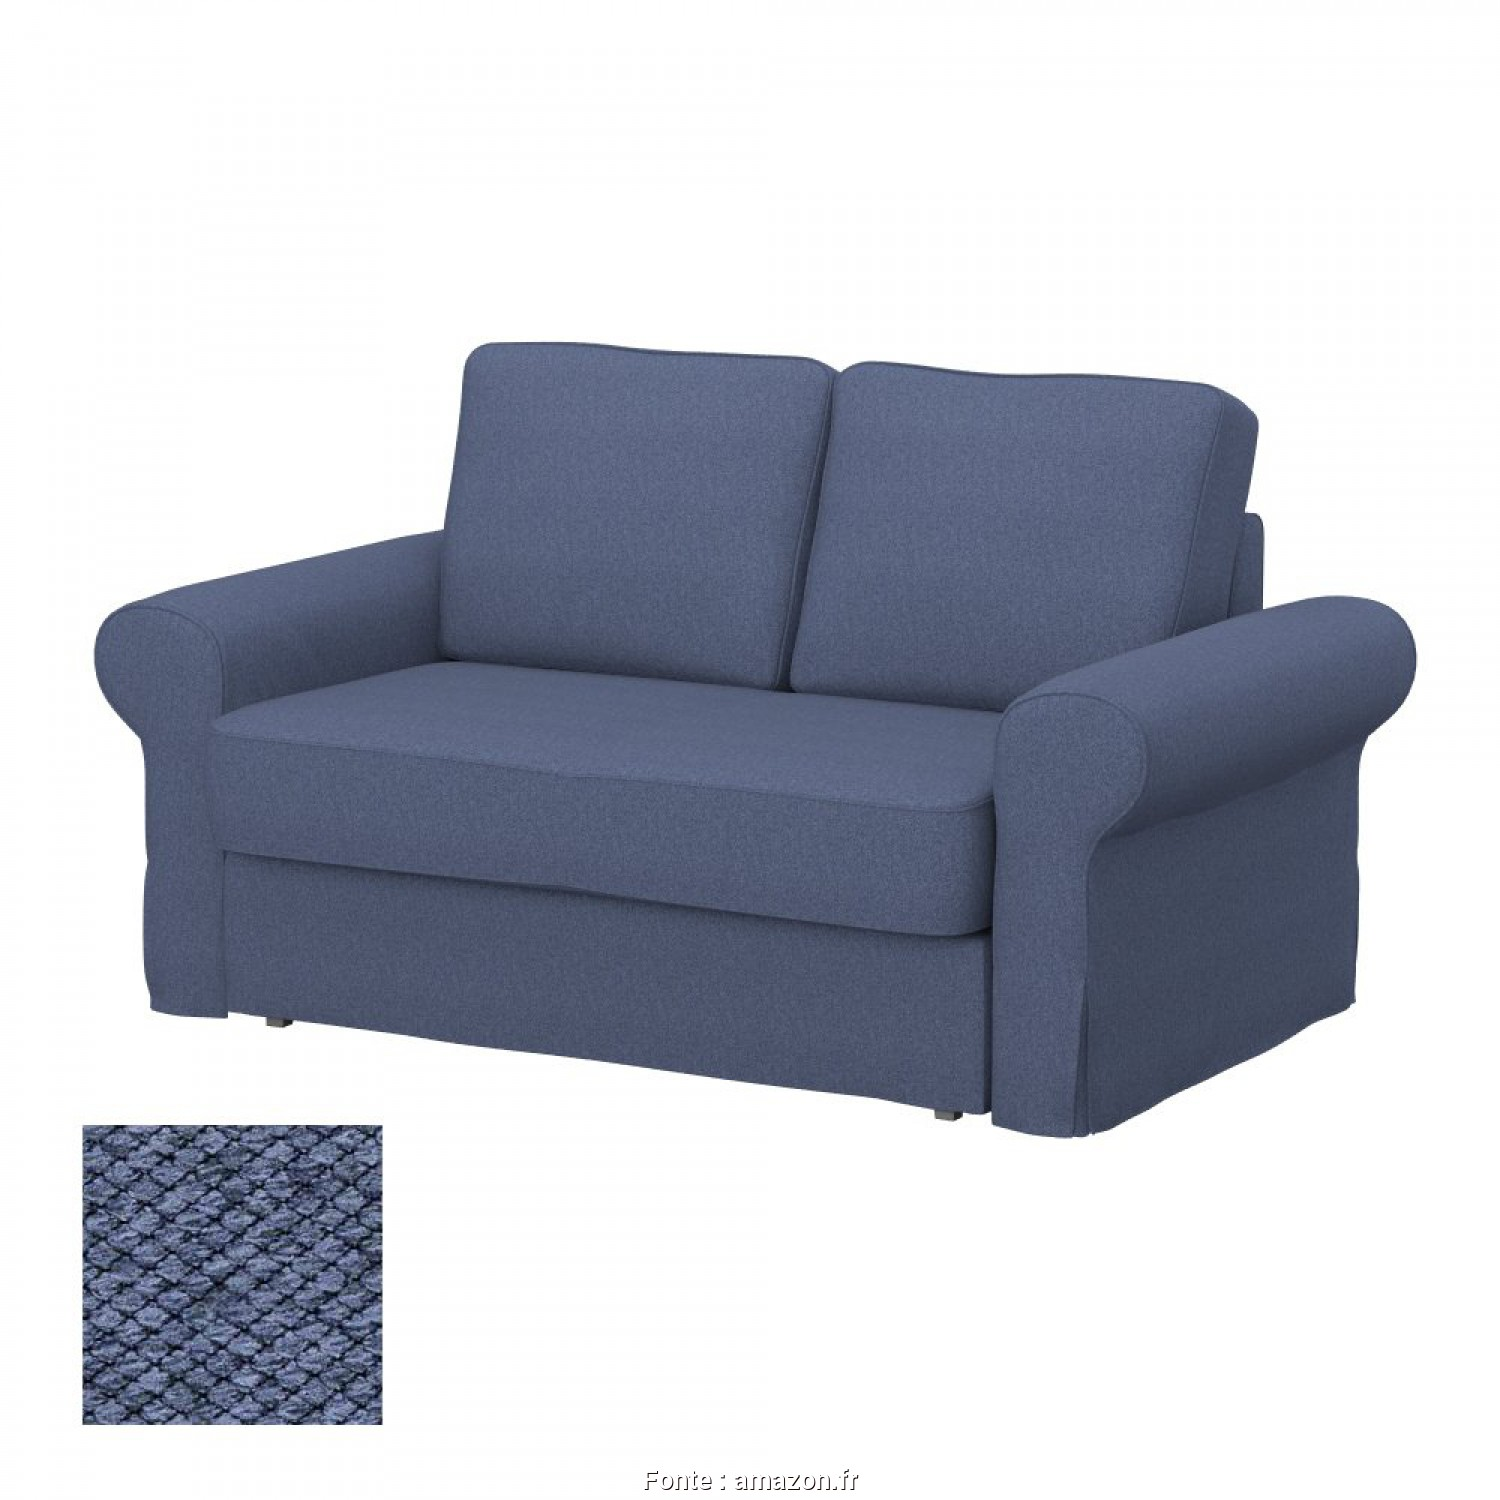 Laver Housse Canapé Ikea Backabro, Superiore Soferia, IKEA BACKABRO Housse De Convertible 2Places, Nordic Denim: Amazon.Fr: Cuisine & Maison